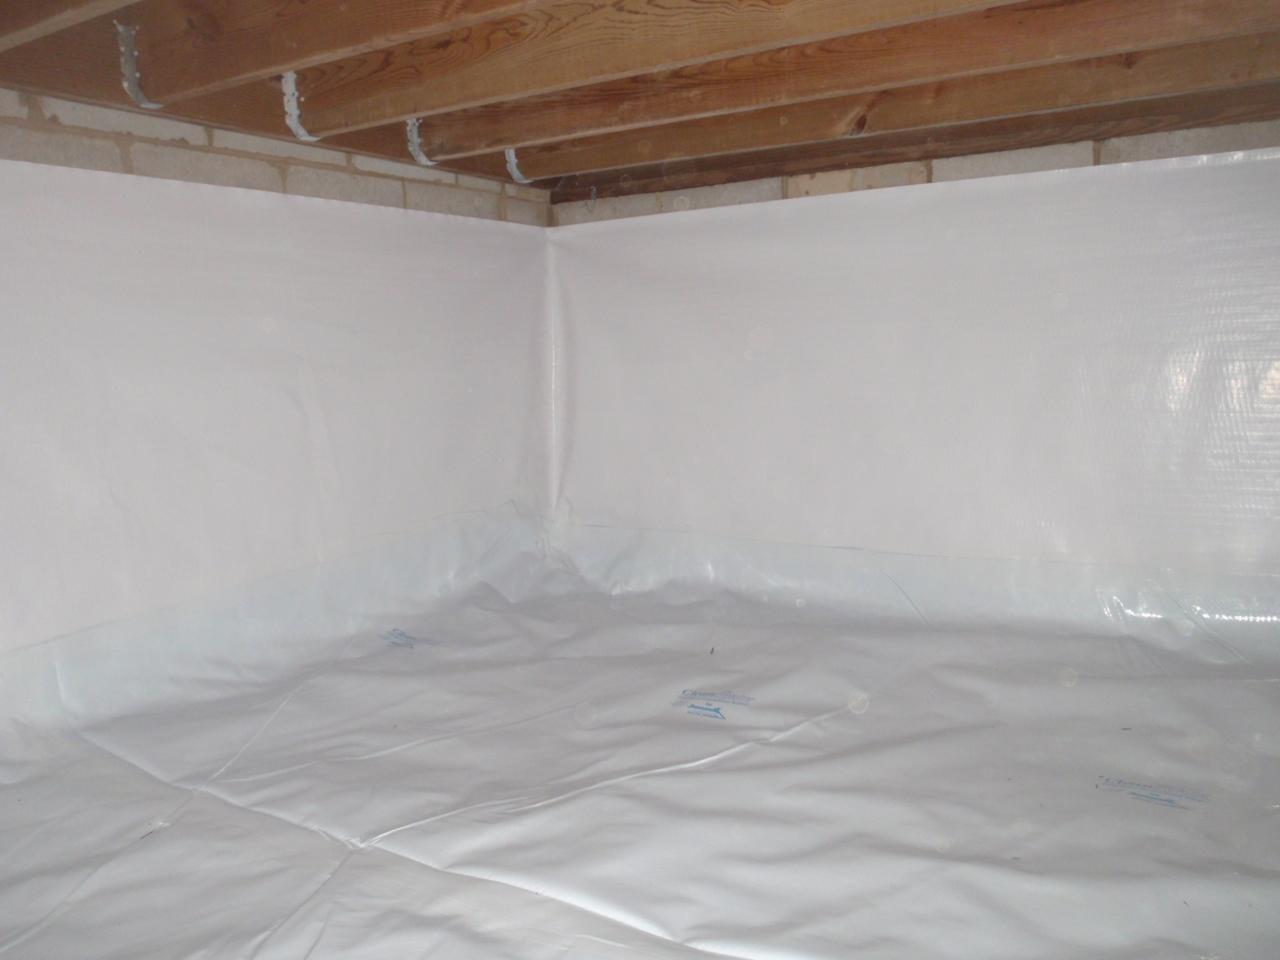 Chester, MD crawlspace encapsulation - After Photo